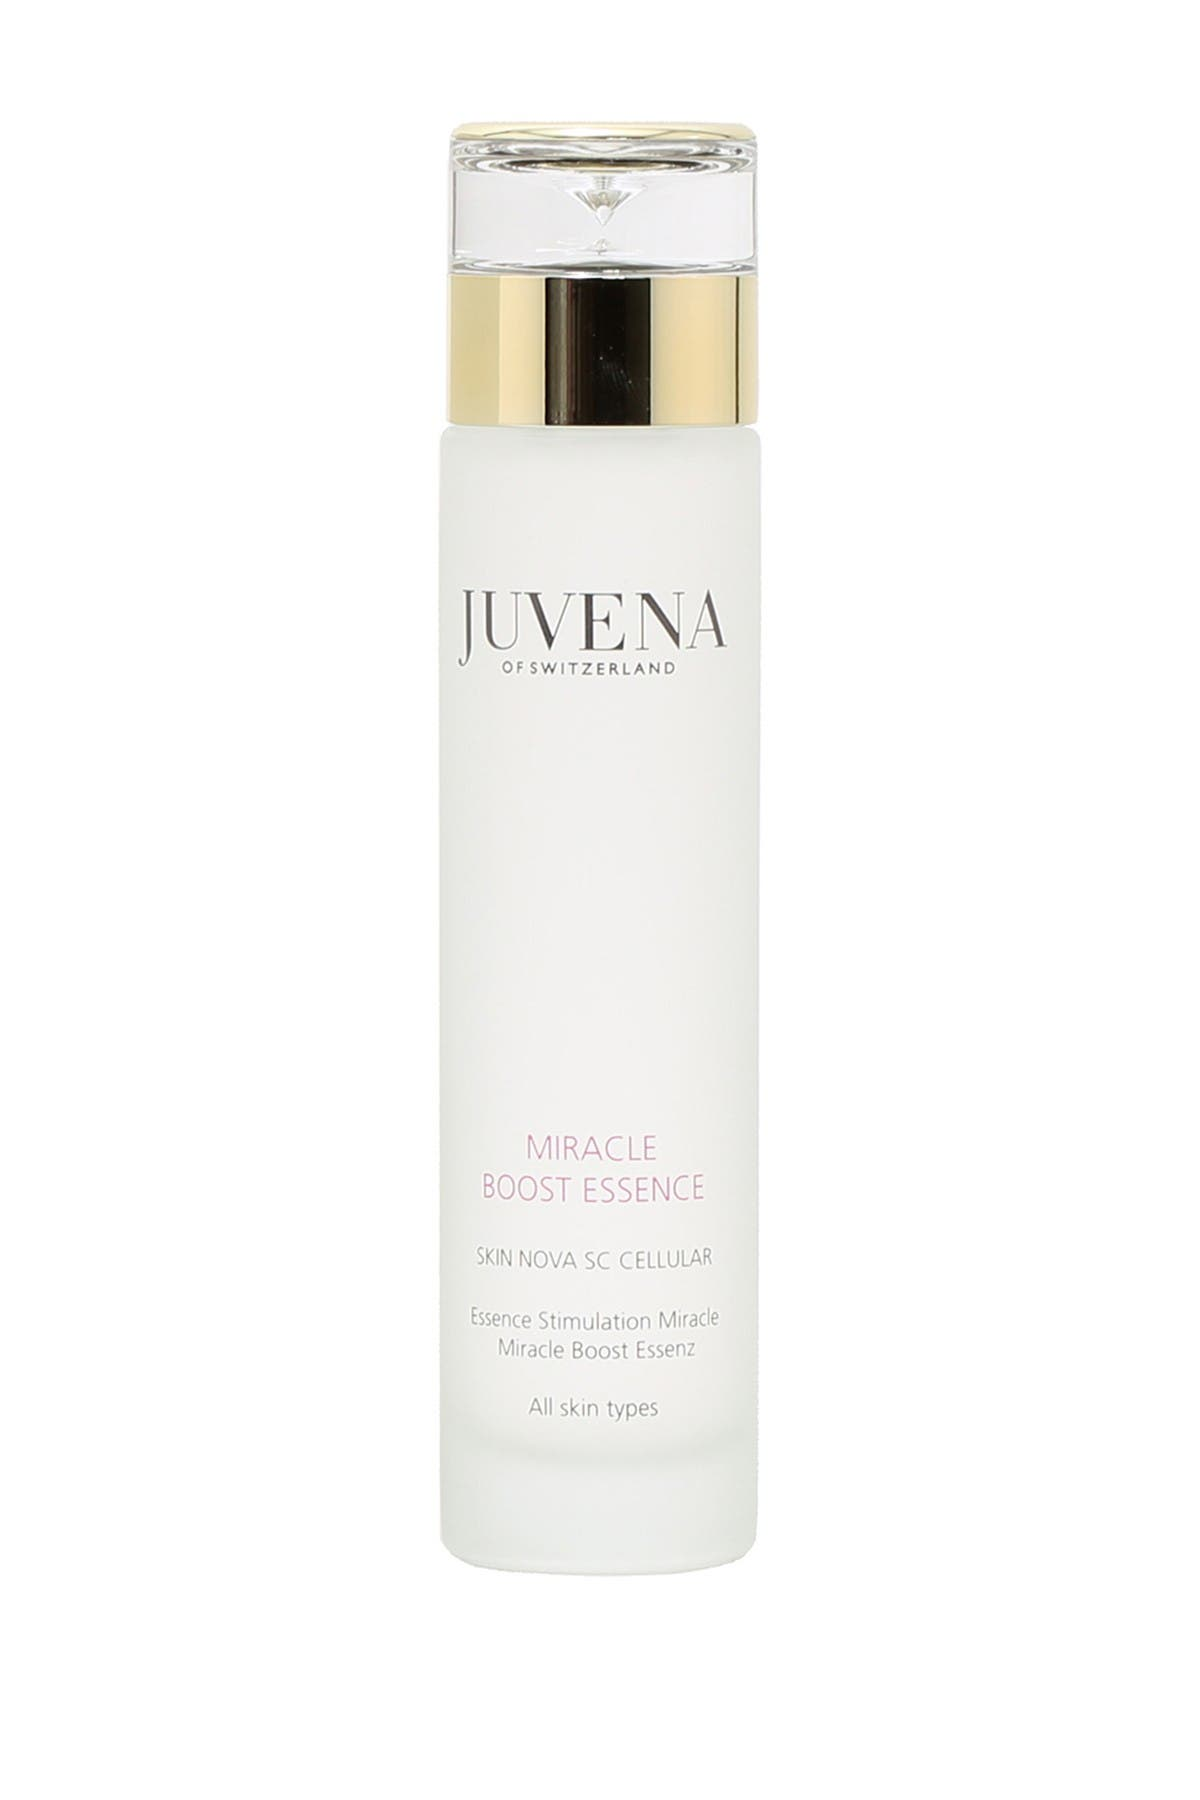 Image of Juvena Miracle Boost Essence